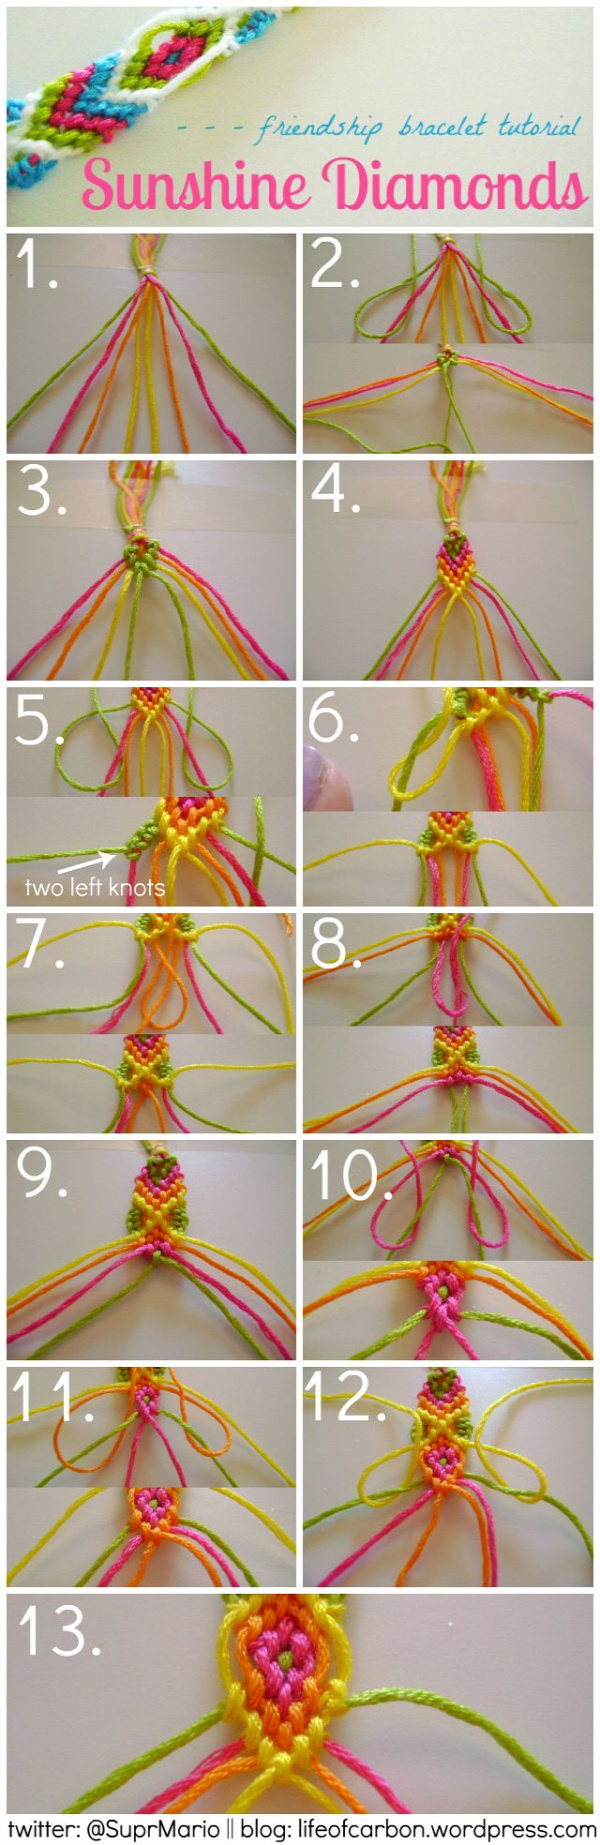 Sunshine Diamonds Friendship Bracelet Tutorial (Not that I have the skill for this, but maybe one day I'll get crazy super powers or something and be able to make this....)